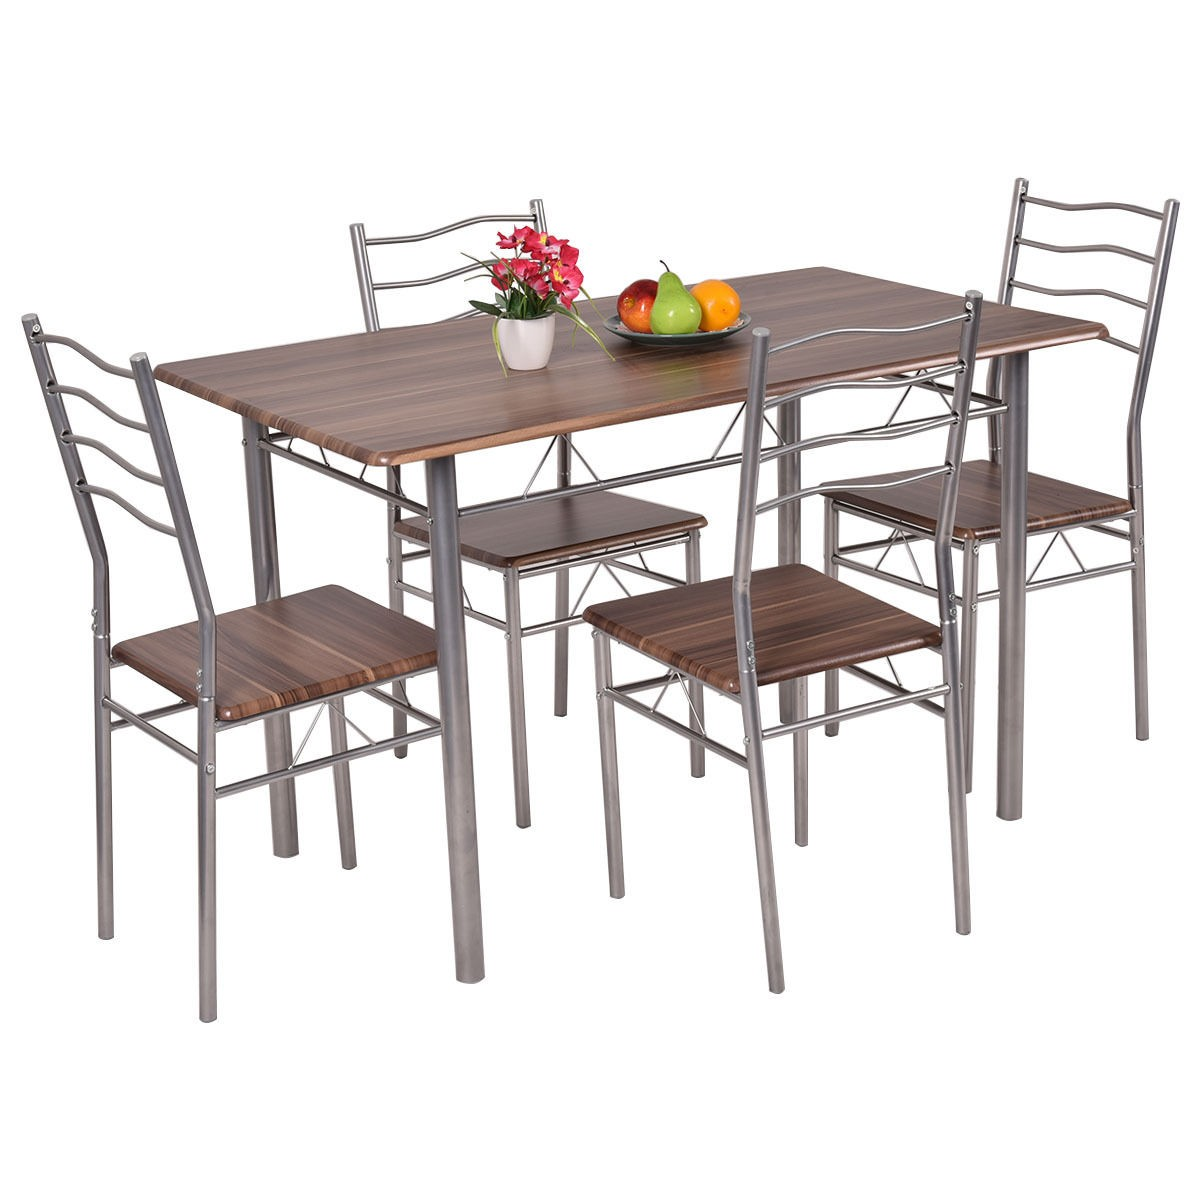 dining table with metal chairs foldable gym chair 5 piece set wood and 4 kitchen